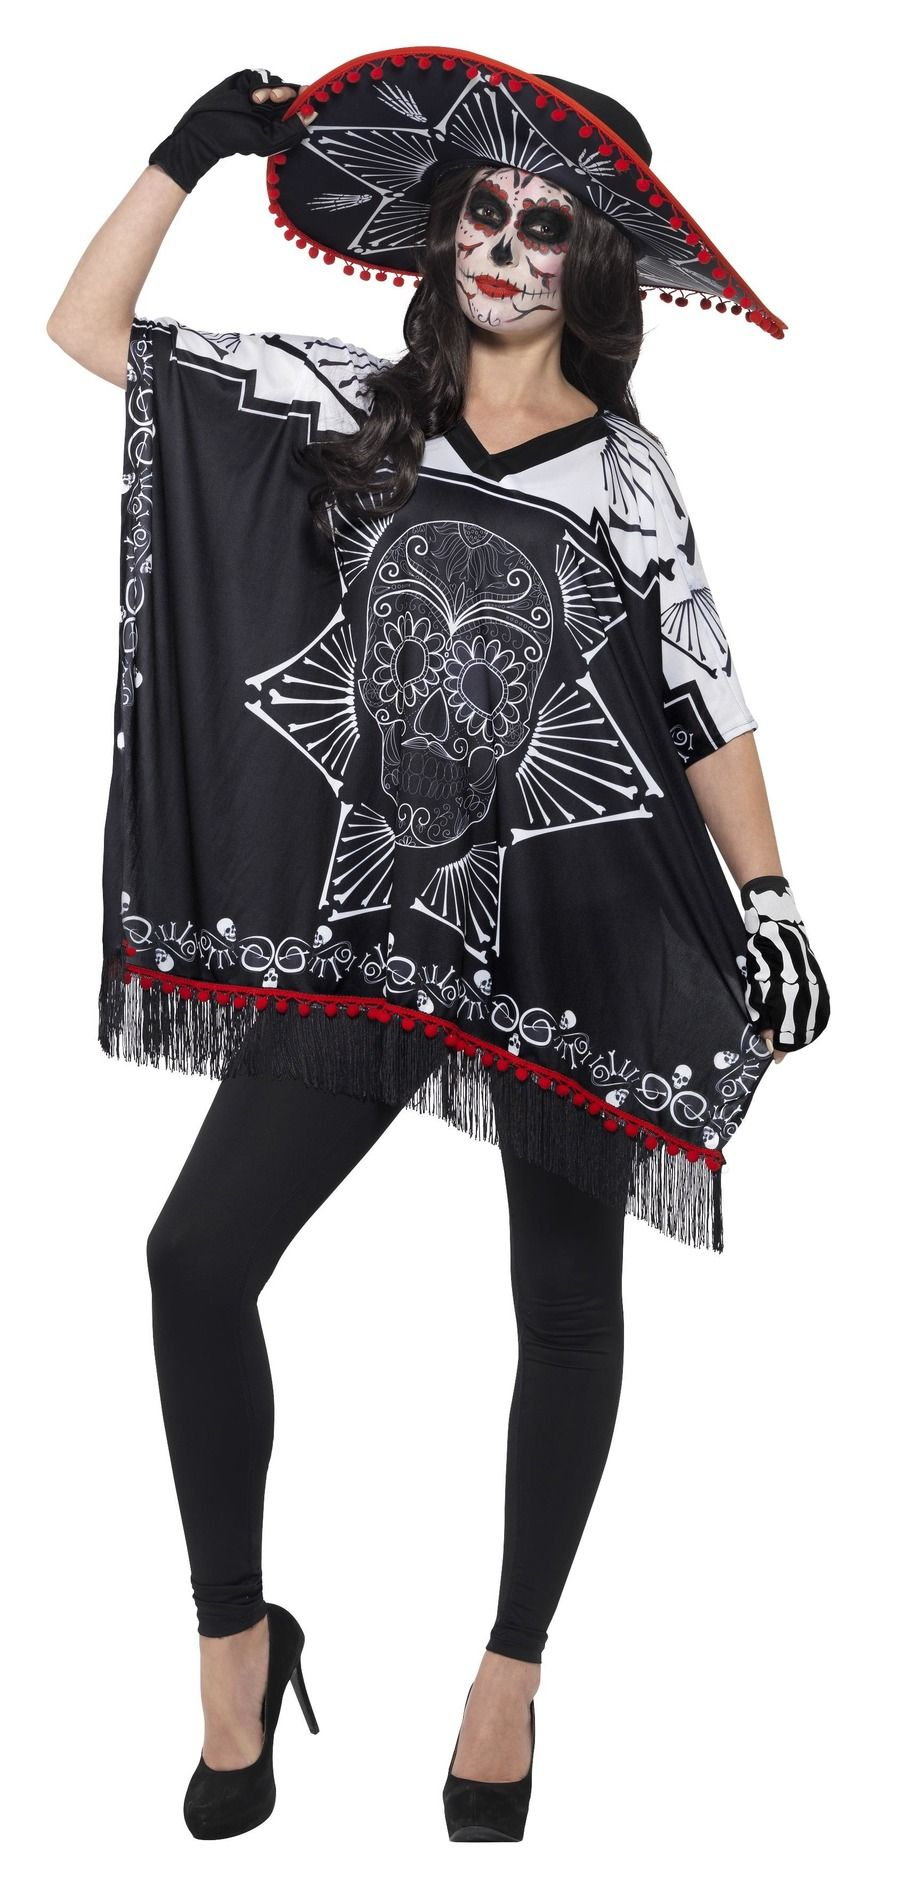 Costum-bandit-mexican-Day-of-the-Dead-fabricademagie